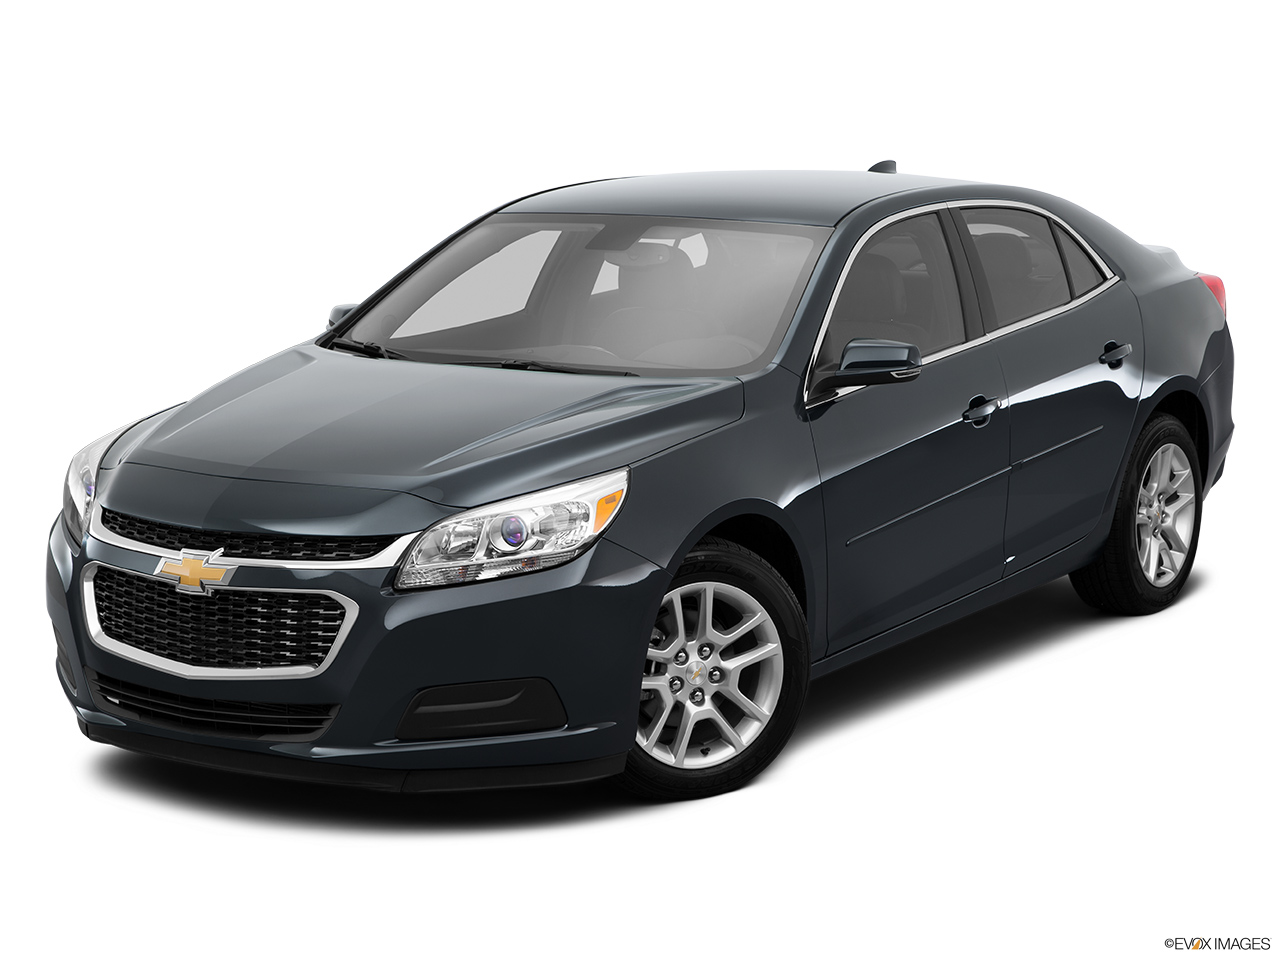 2015 chevrolet malibu ls w 1fl sedan. Black Bedroom Furniture Sets. Home Design Ideas